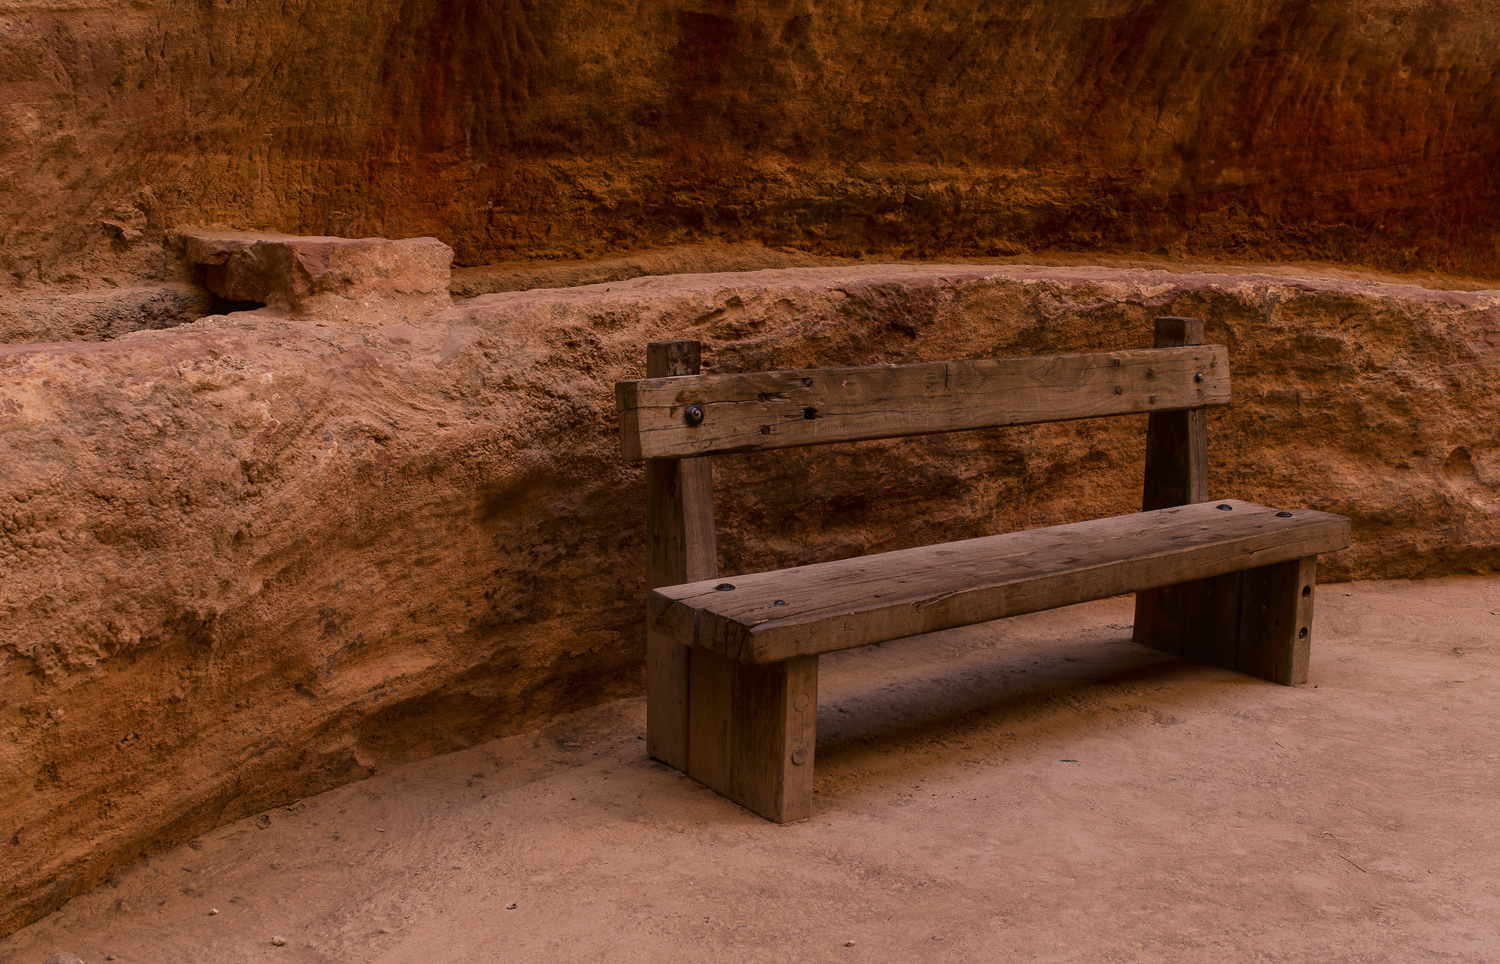 Bench in the Siq - Petra, 2011